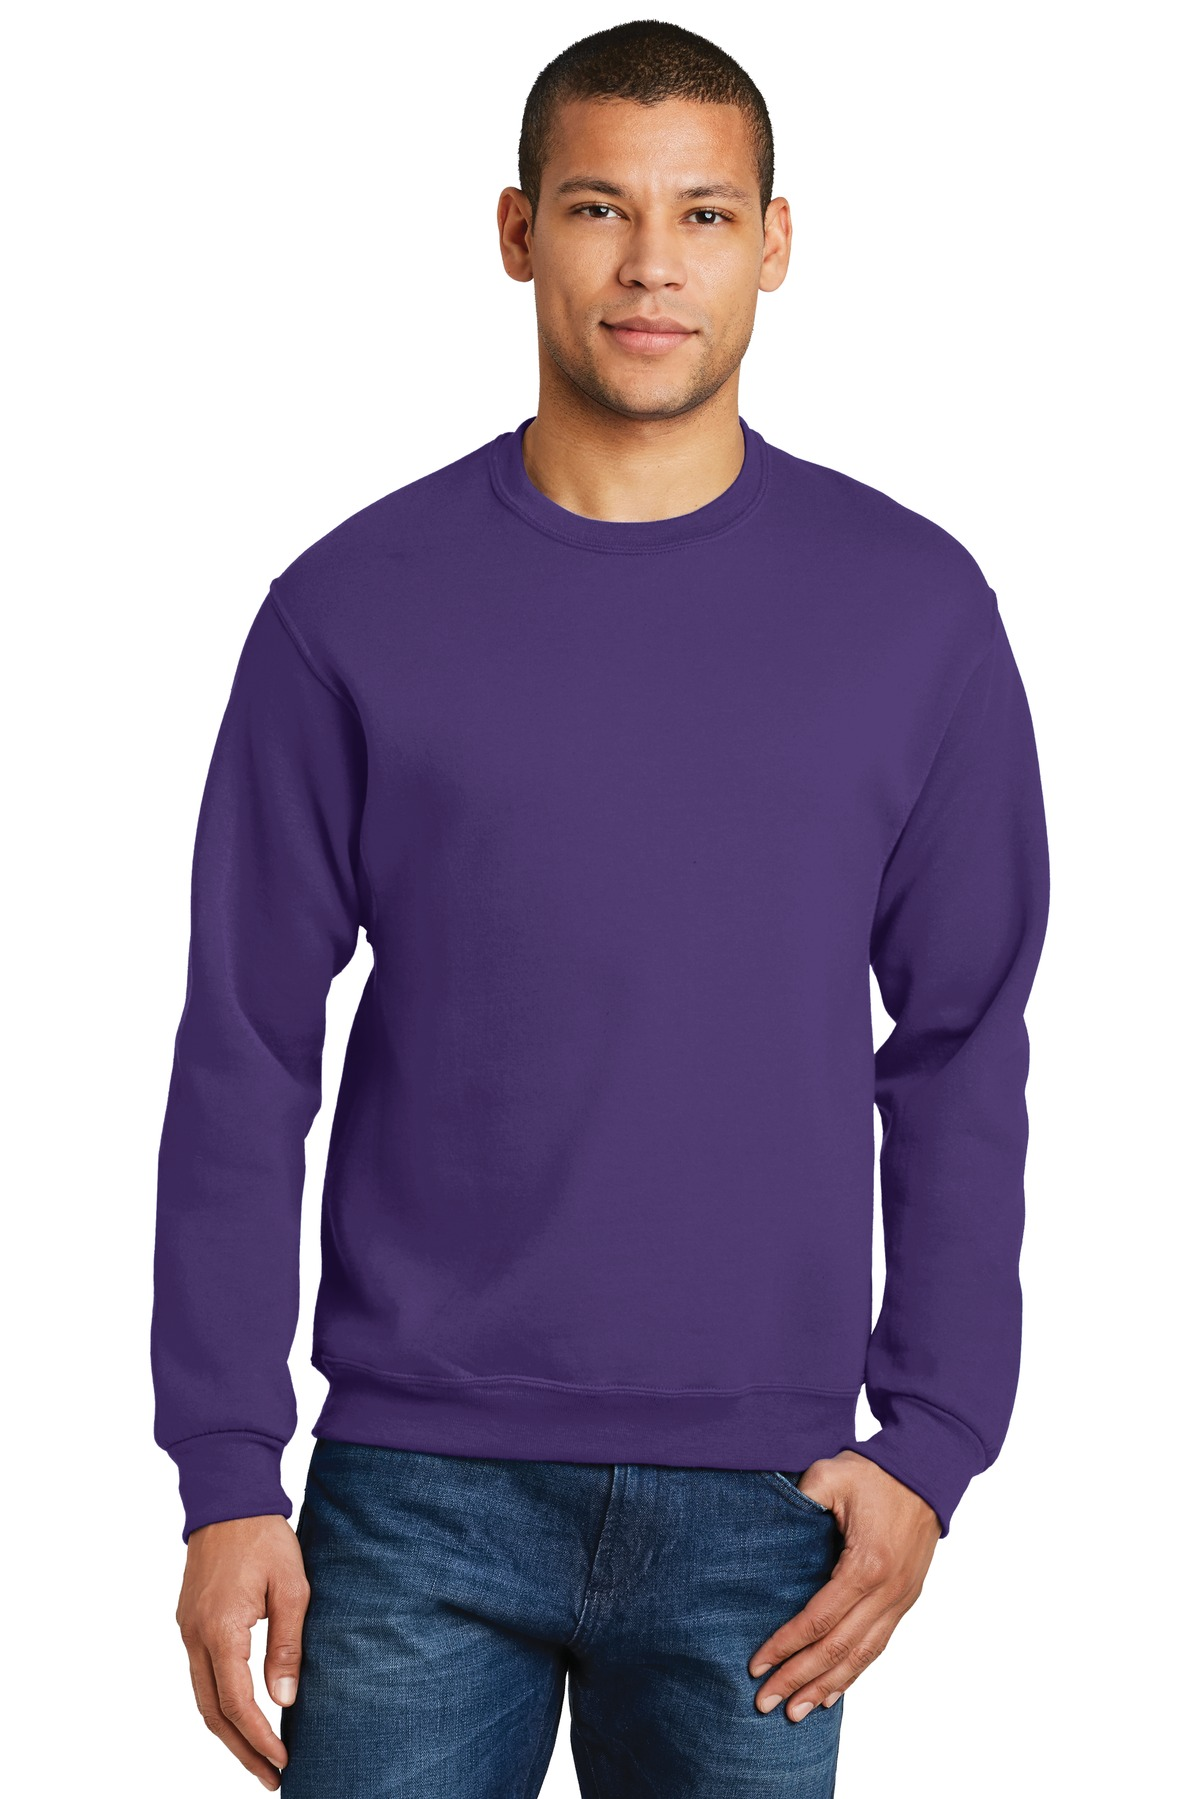 JERZEES ®  - NuBlend ®  Crewneck Sweatshirt.  562M - Deep Purple